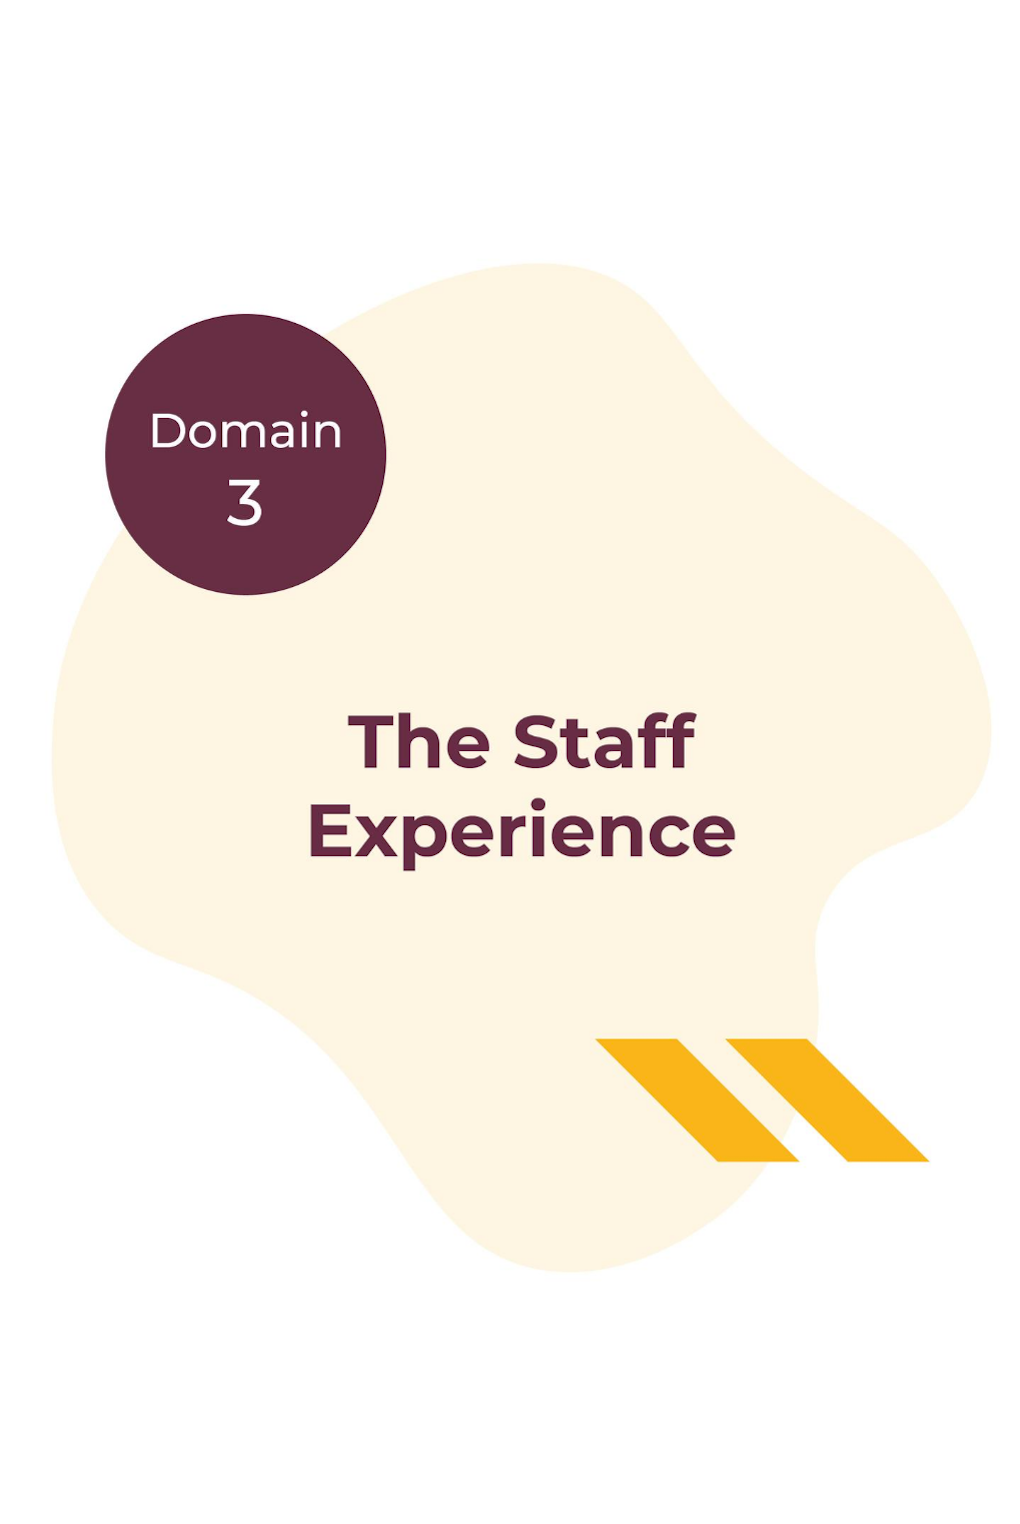 Domain 3 - The Staff Experience